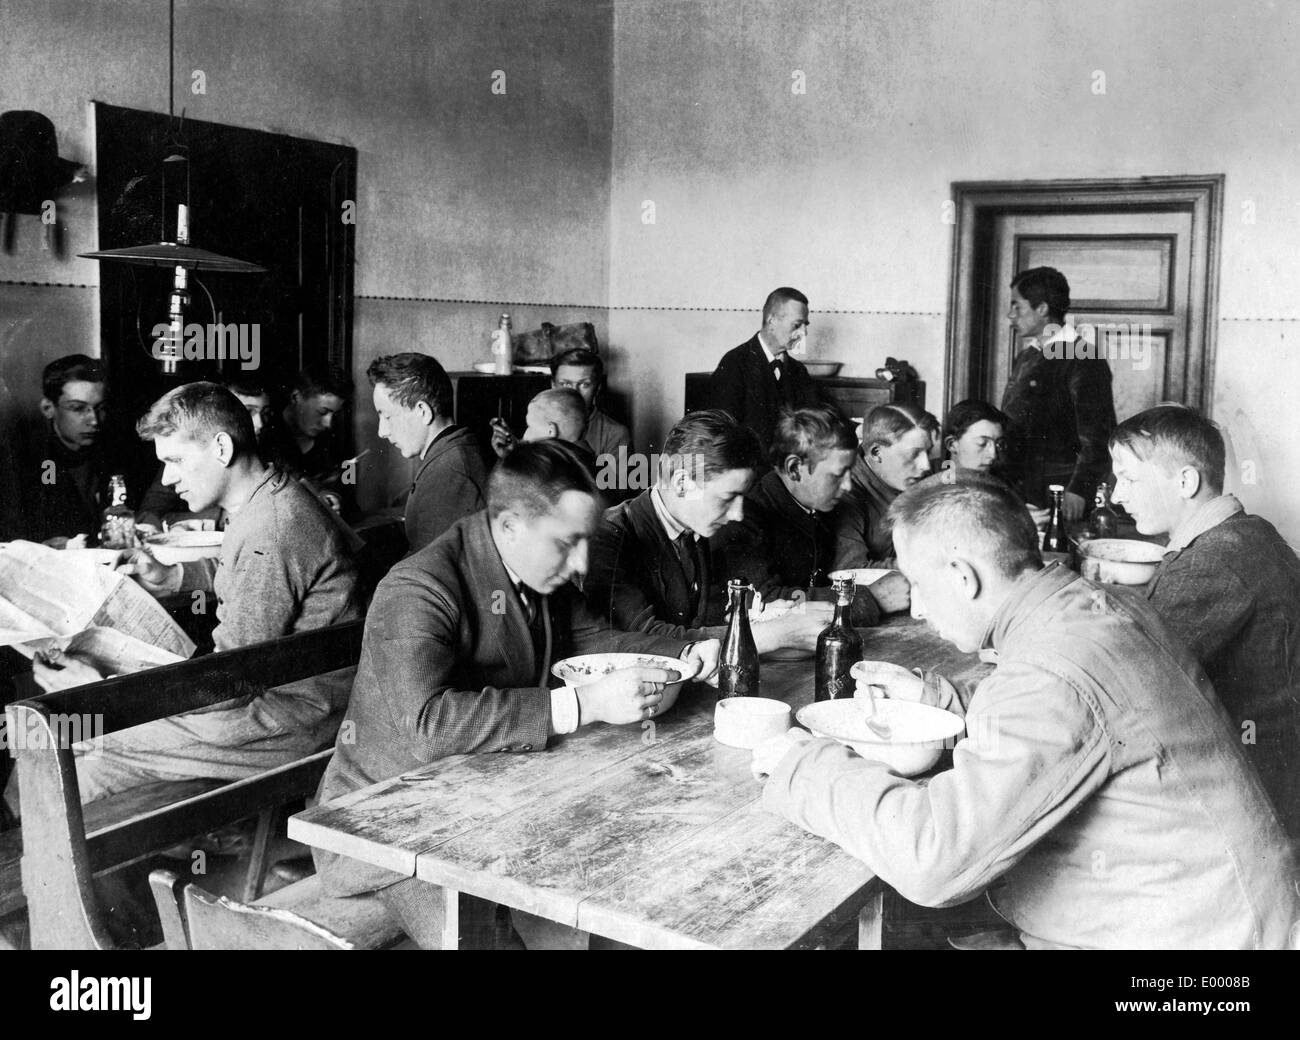 Adolescents at lunch, 1917 Stock Photo